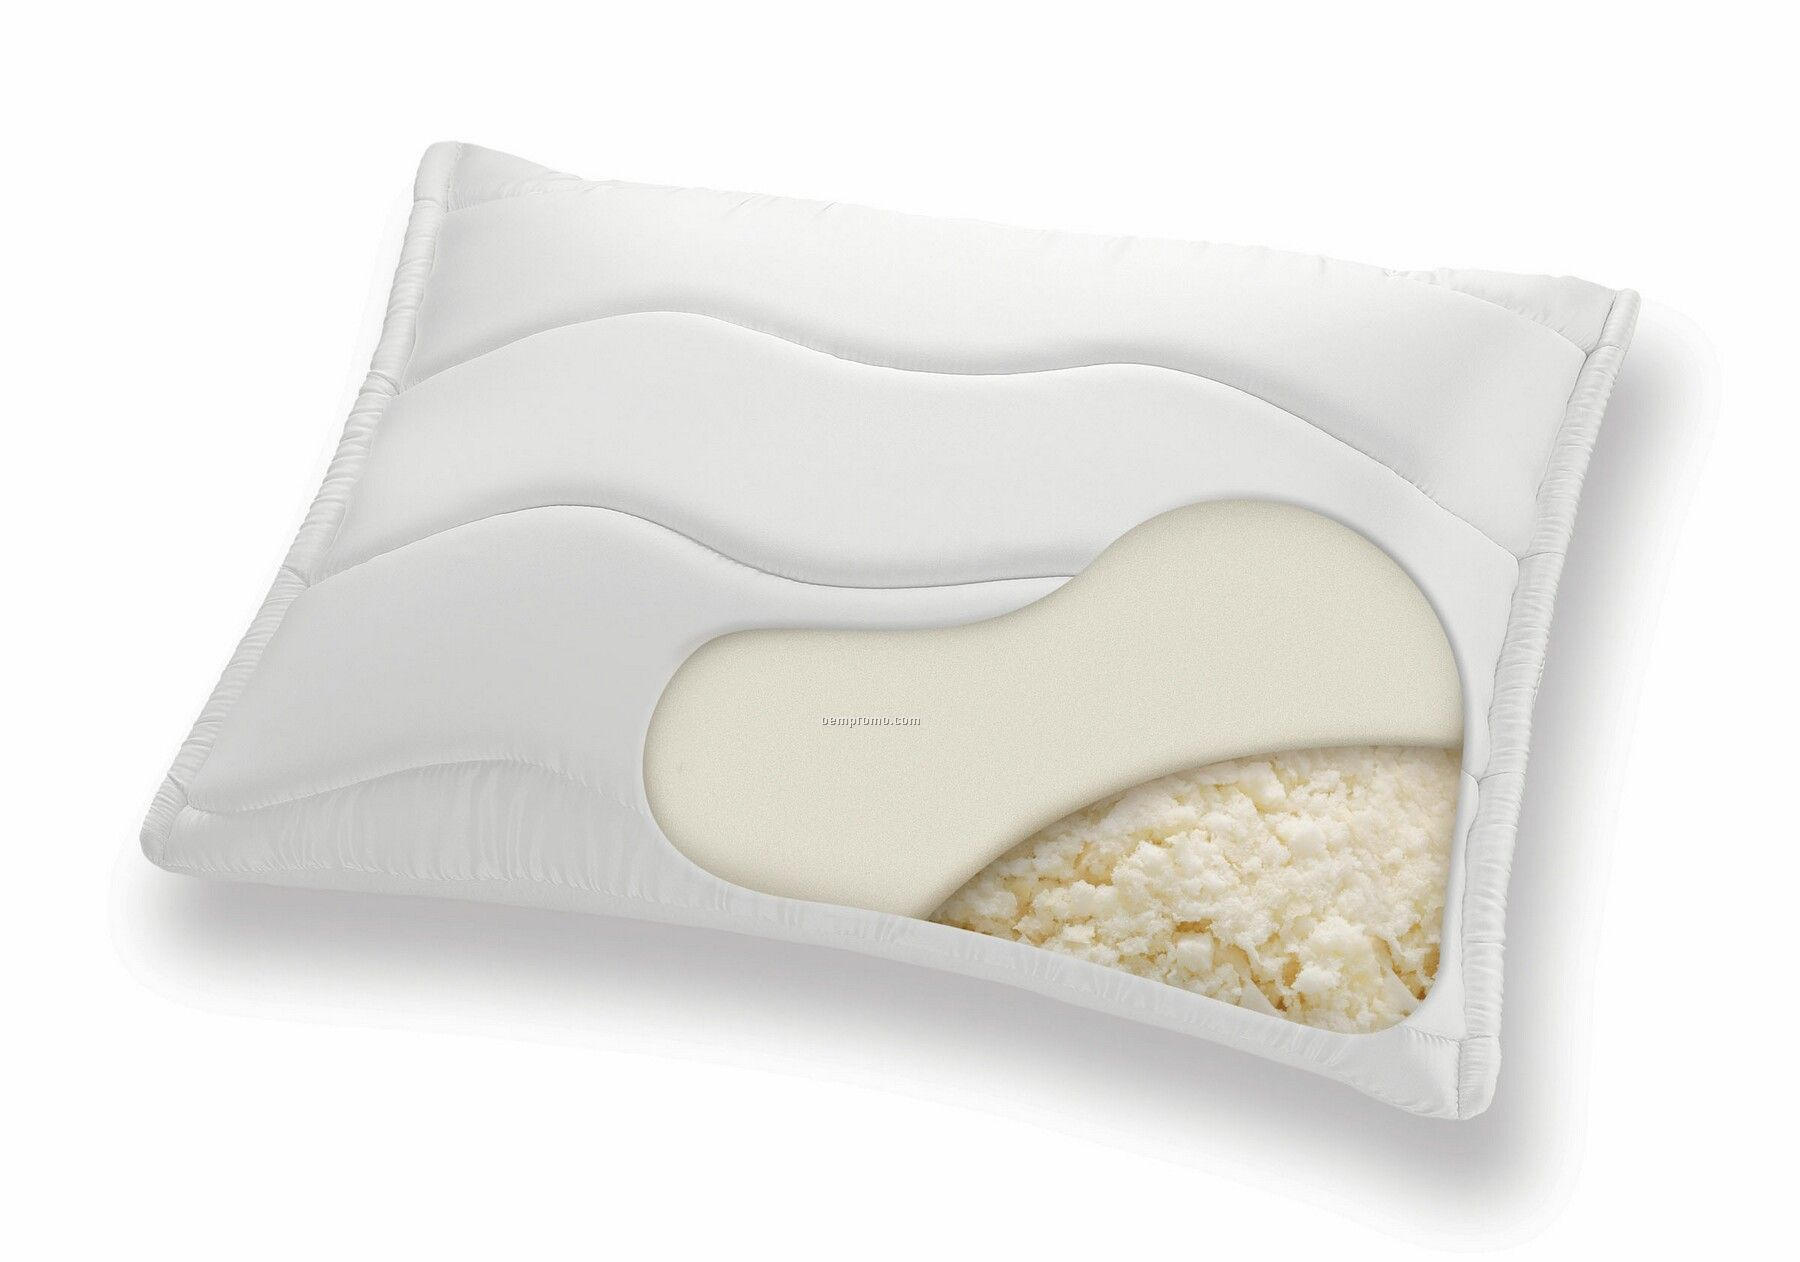 Cradling Comfort Elite Traditional Memory Foam Pillow : Homedics Cradling Comfort Classic Pillow,China Wholesale Homedics Cradling Comfort Classic Pillow